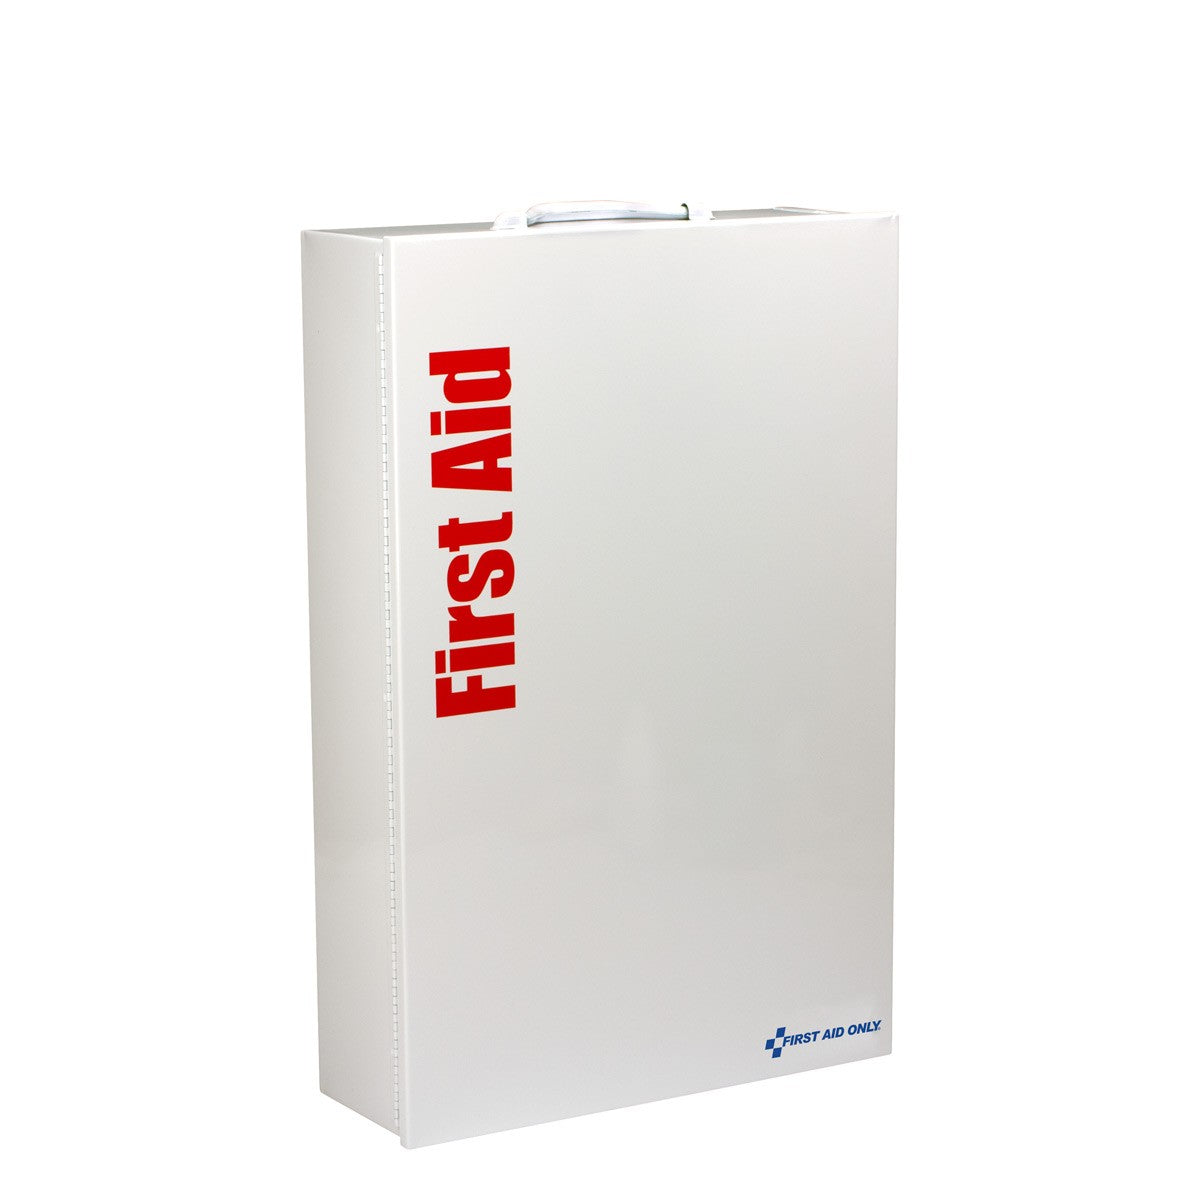 First Aid Only 200 Person XXL Metal Smart Compliance First Aid Cabinet without Medication